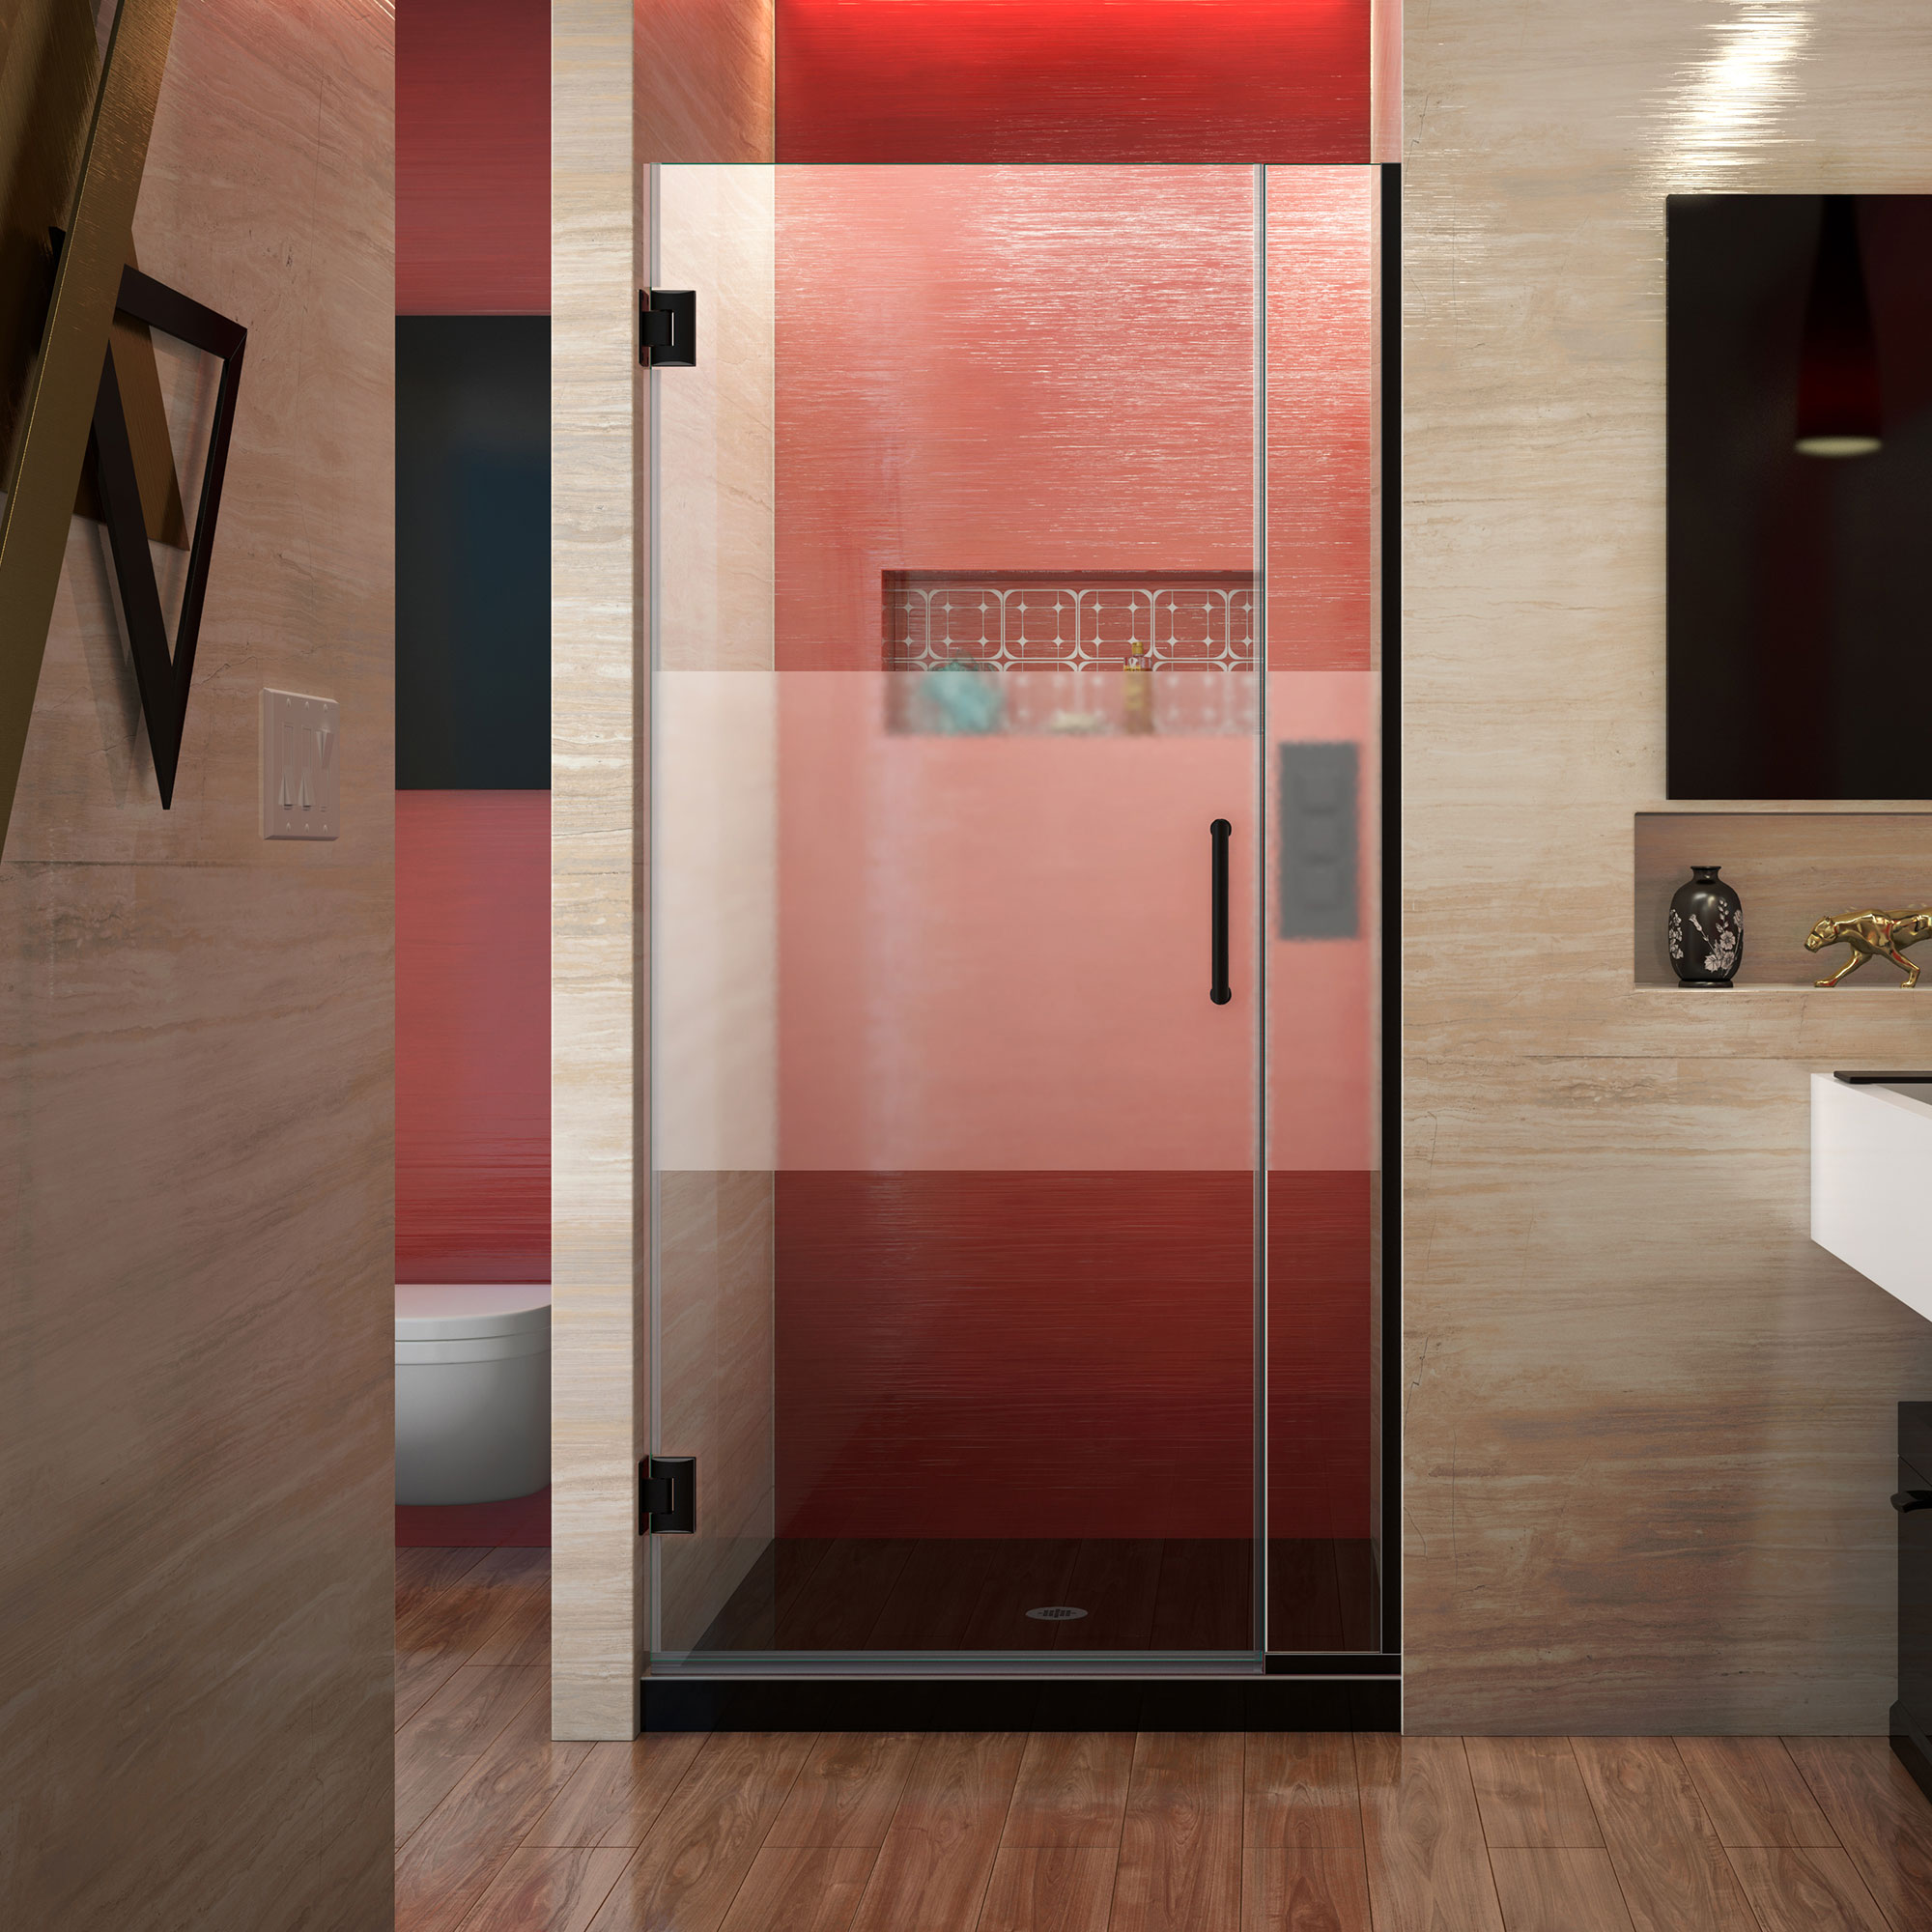 DreamLine Unidoor Plus 32-32 1/2 in. W x 72 in. H Frameless Hinged Shower Door, Frosted Band, Satin Black